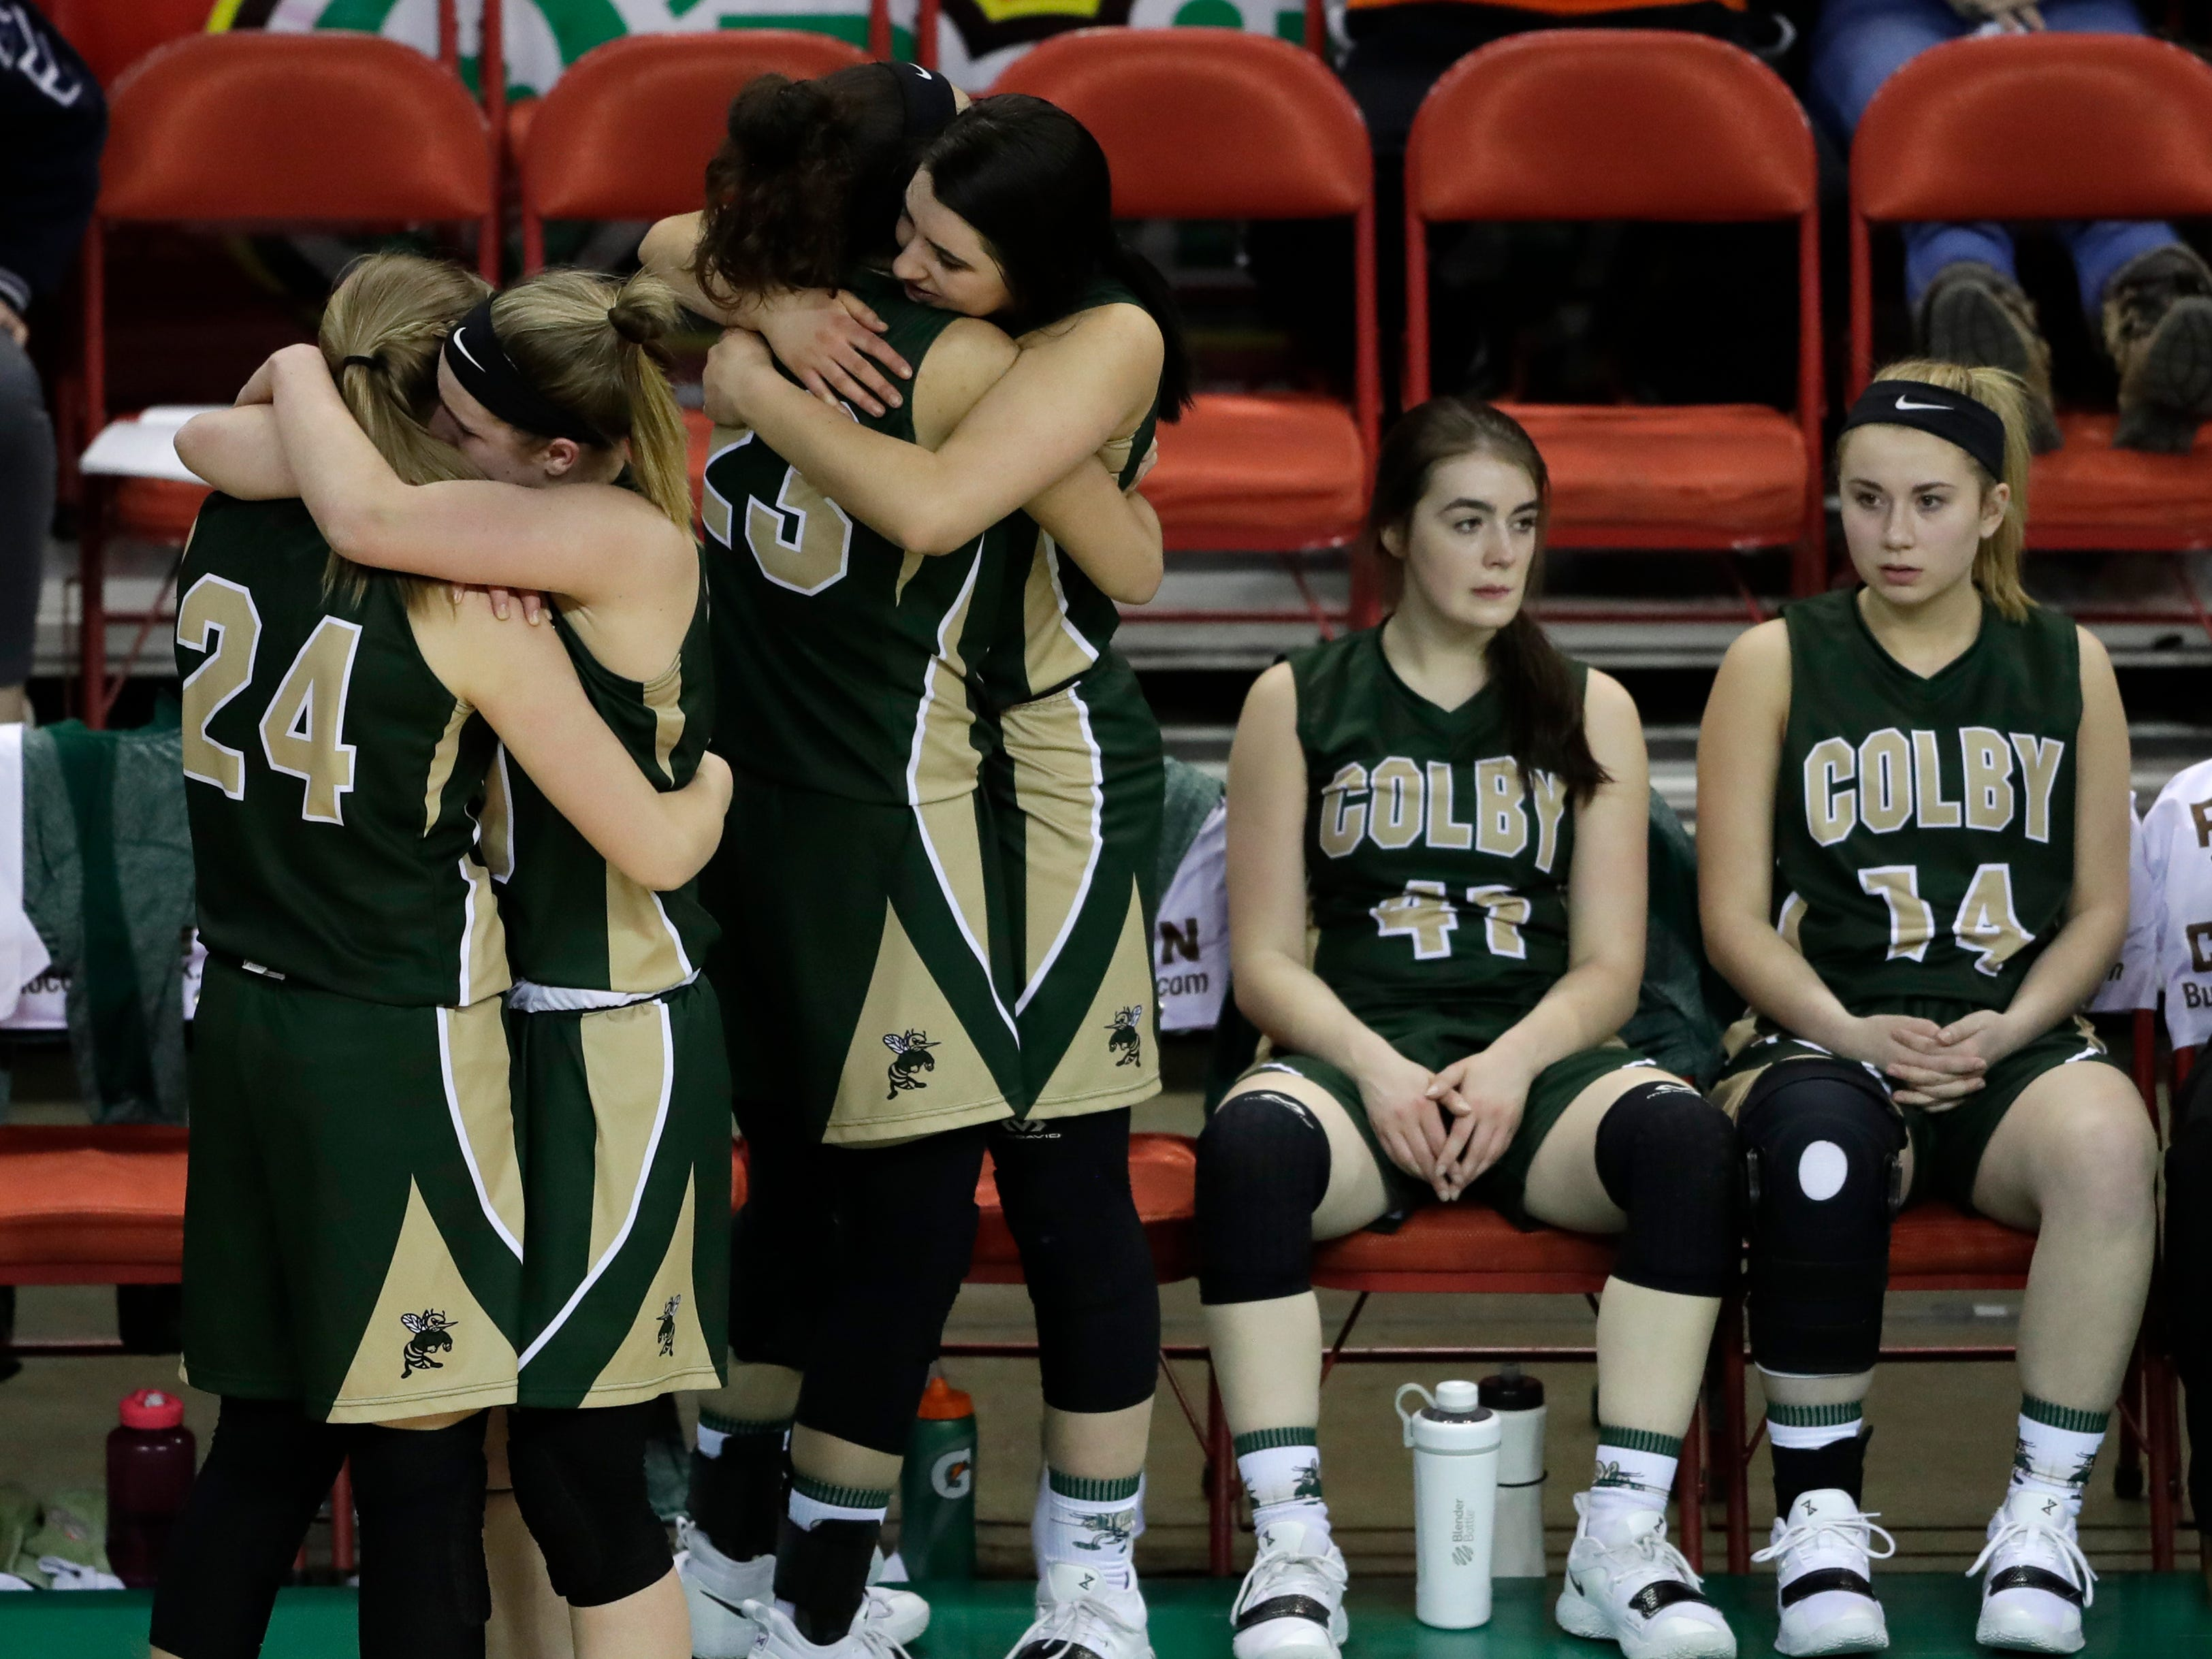 Colby's Lexi Underwood (24) and Hailey Voelker (11) embrace as their teammates Vanessa Lopez (23) and Mackenzie Seemann (21) embrace in the closing minutes against Melrose-Mindoro during their Division 4 semifinal game at the WIAA girls state basketball tournament Thursday, March 7, 2019, at the Resch Center in Ashwaubenon, Wis.